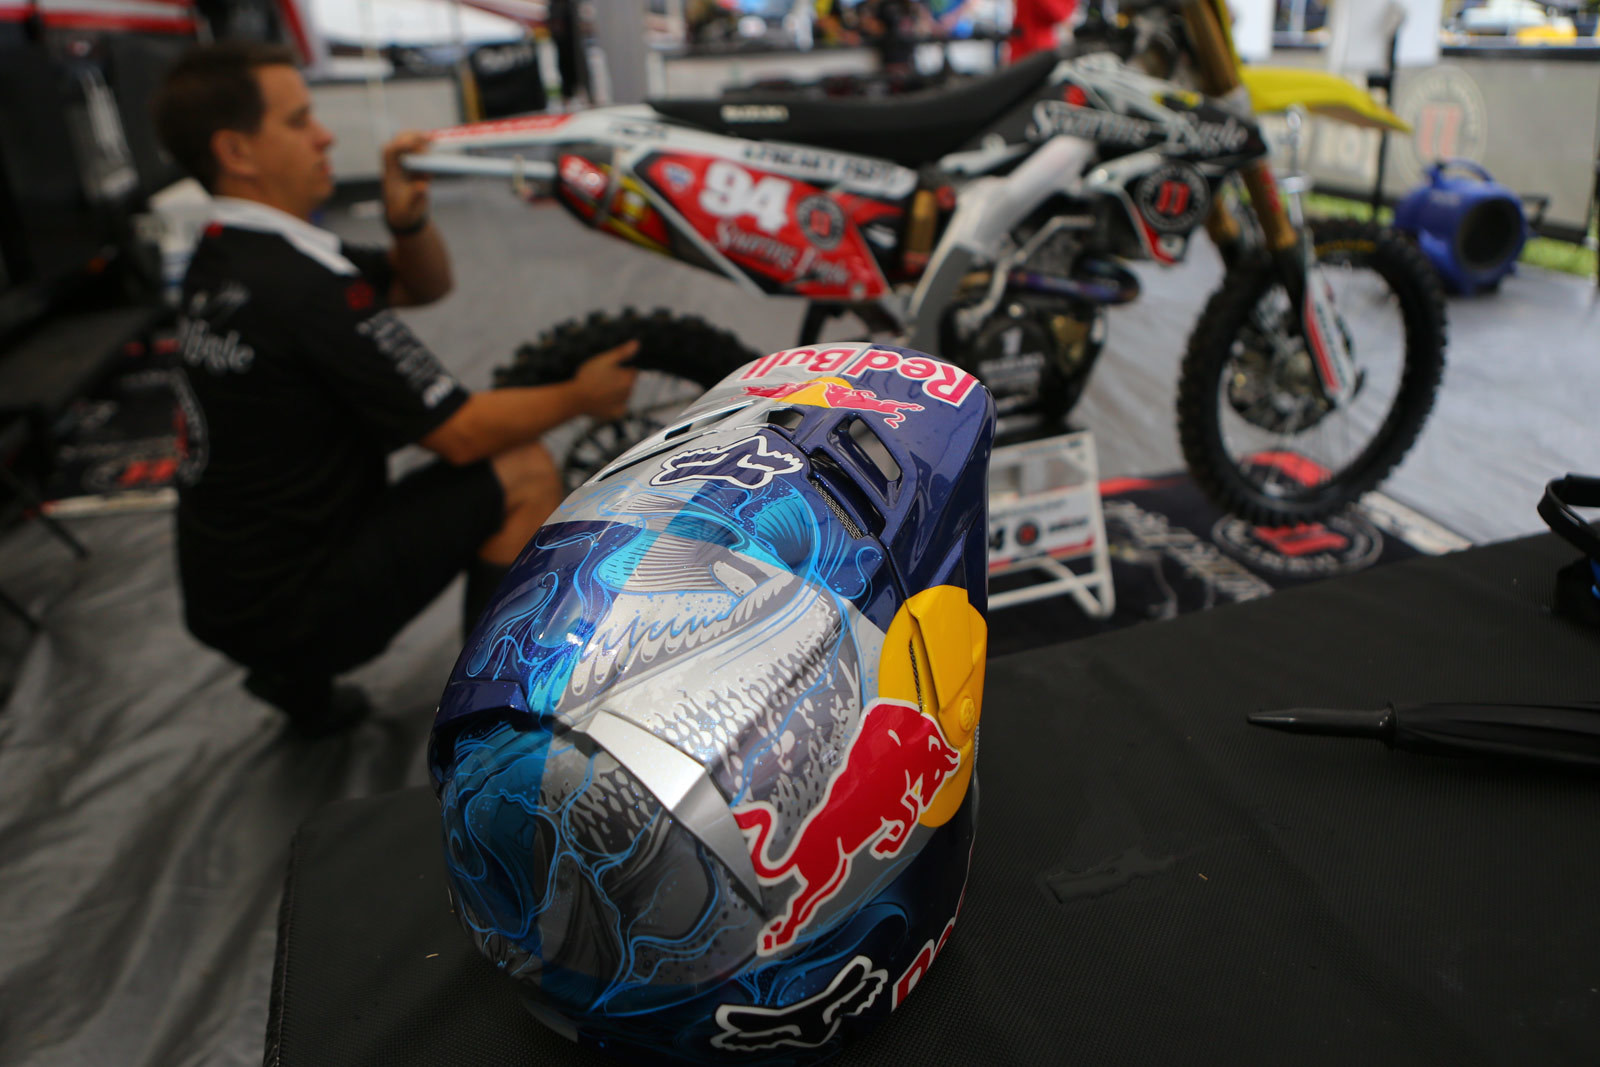 Airtrix does a lot of the helmets for Ken Roczen, and there are often some cool (but subtle) things going on in the background. Take this koi fish as an example.